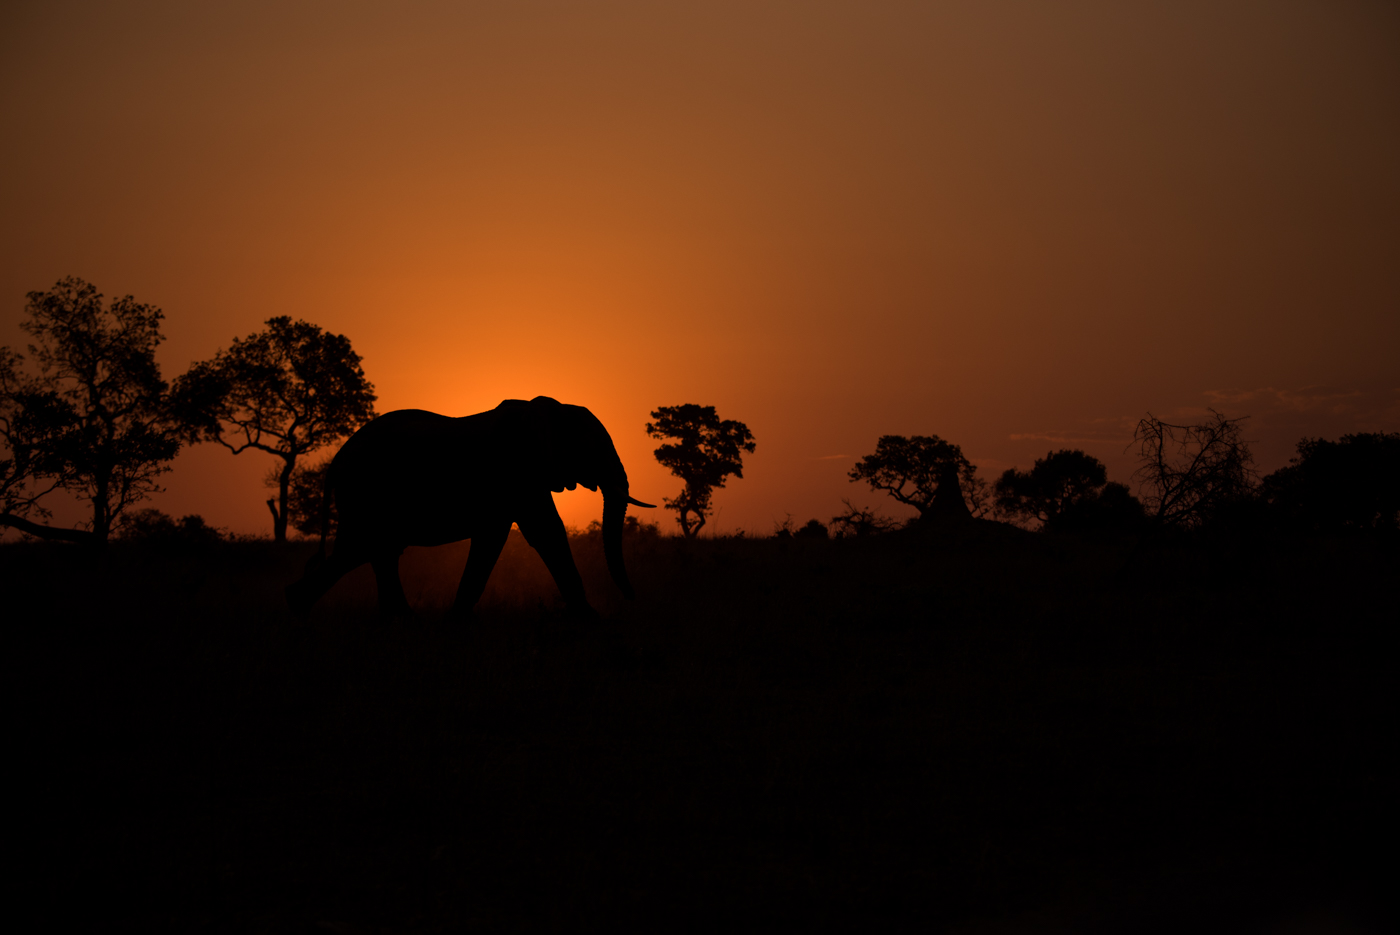 Elliphant in sunset